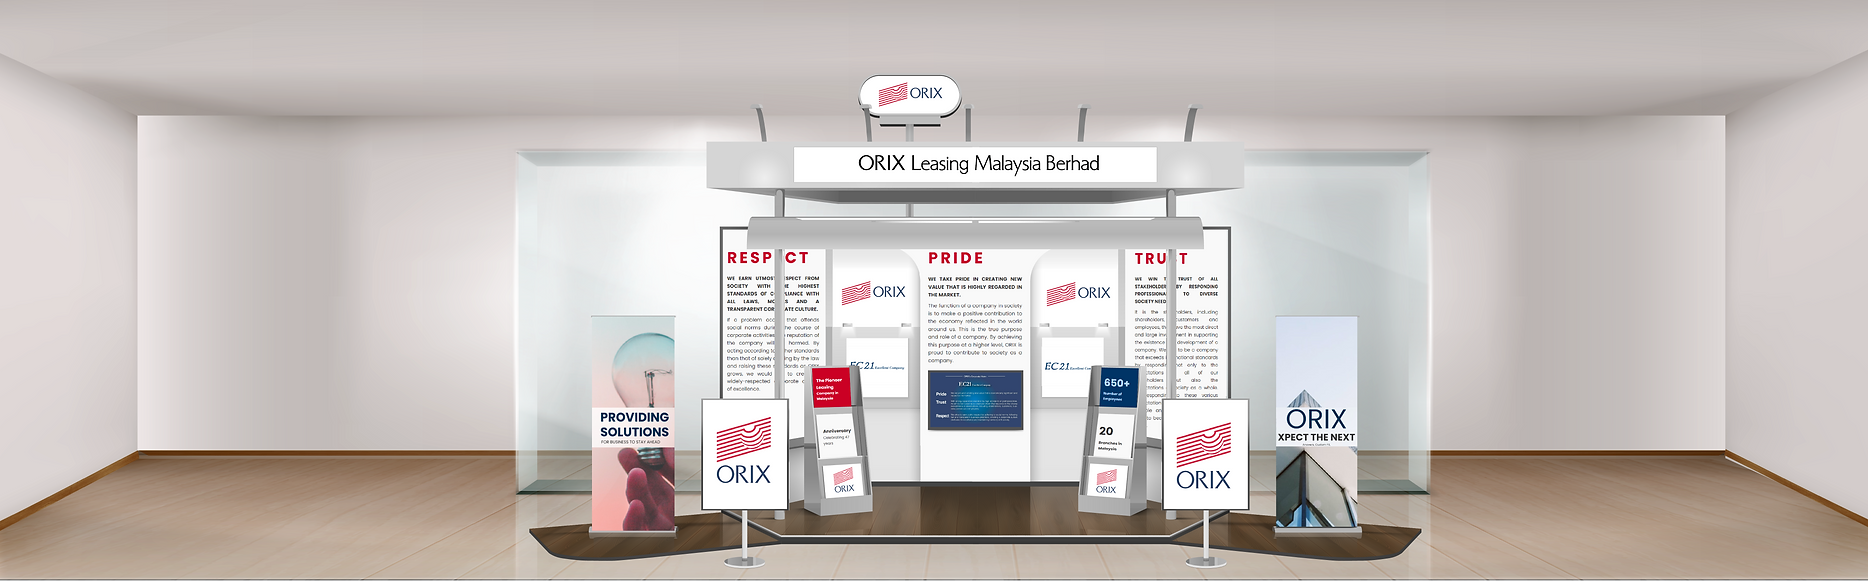 ORIX_Booth-01.png